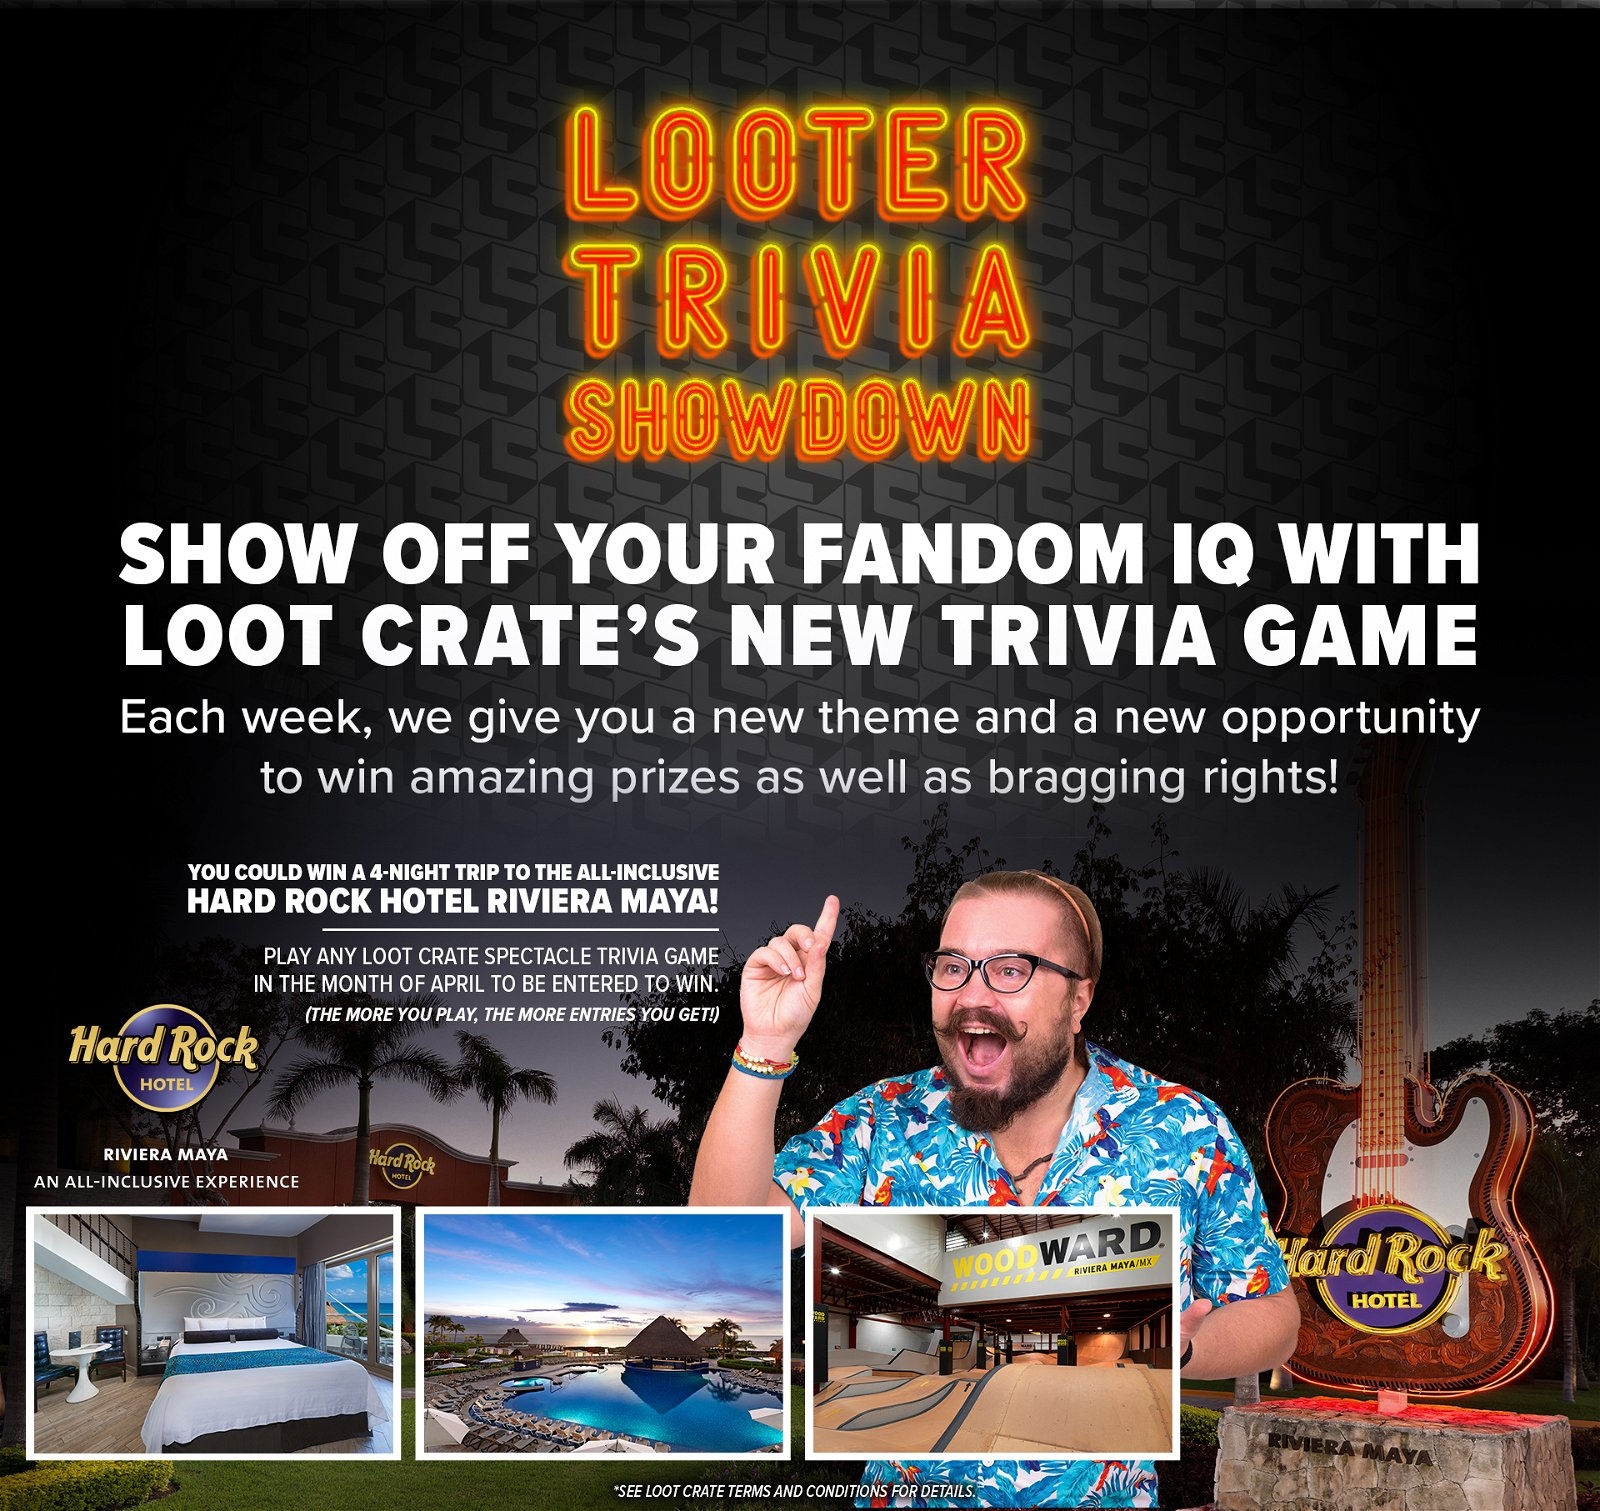 Loot Crate: 🎸Play trivia to win a 4-night trip to the Hard Rock